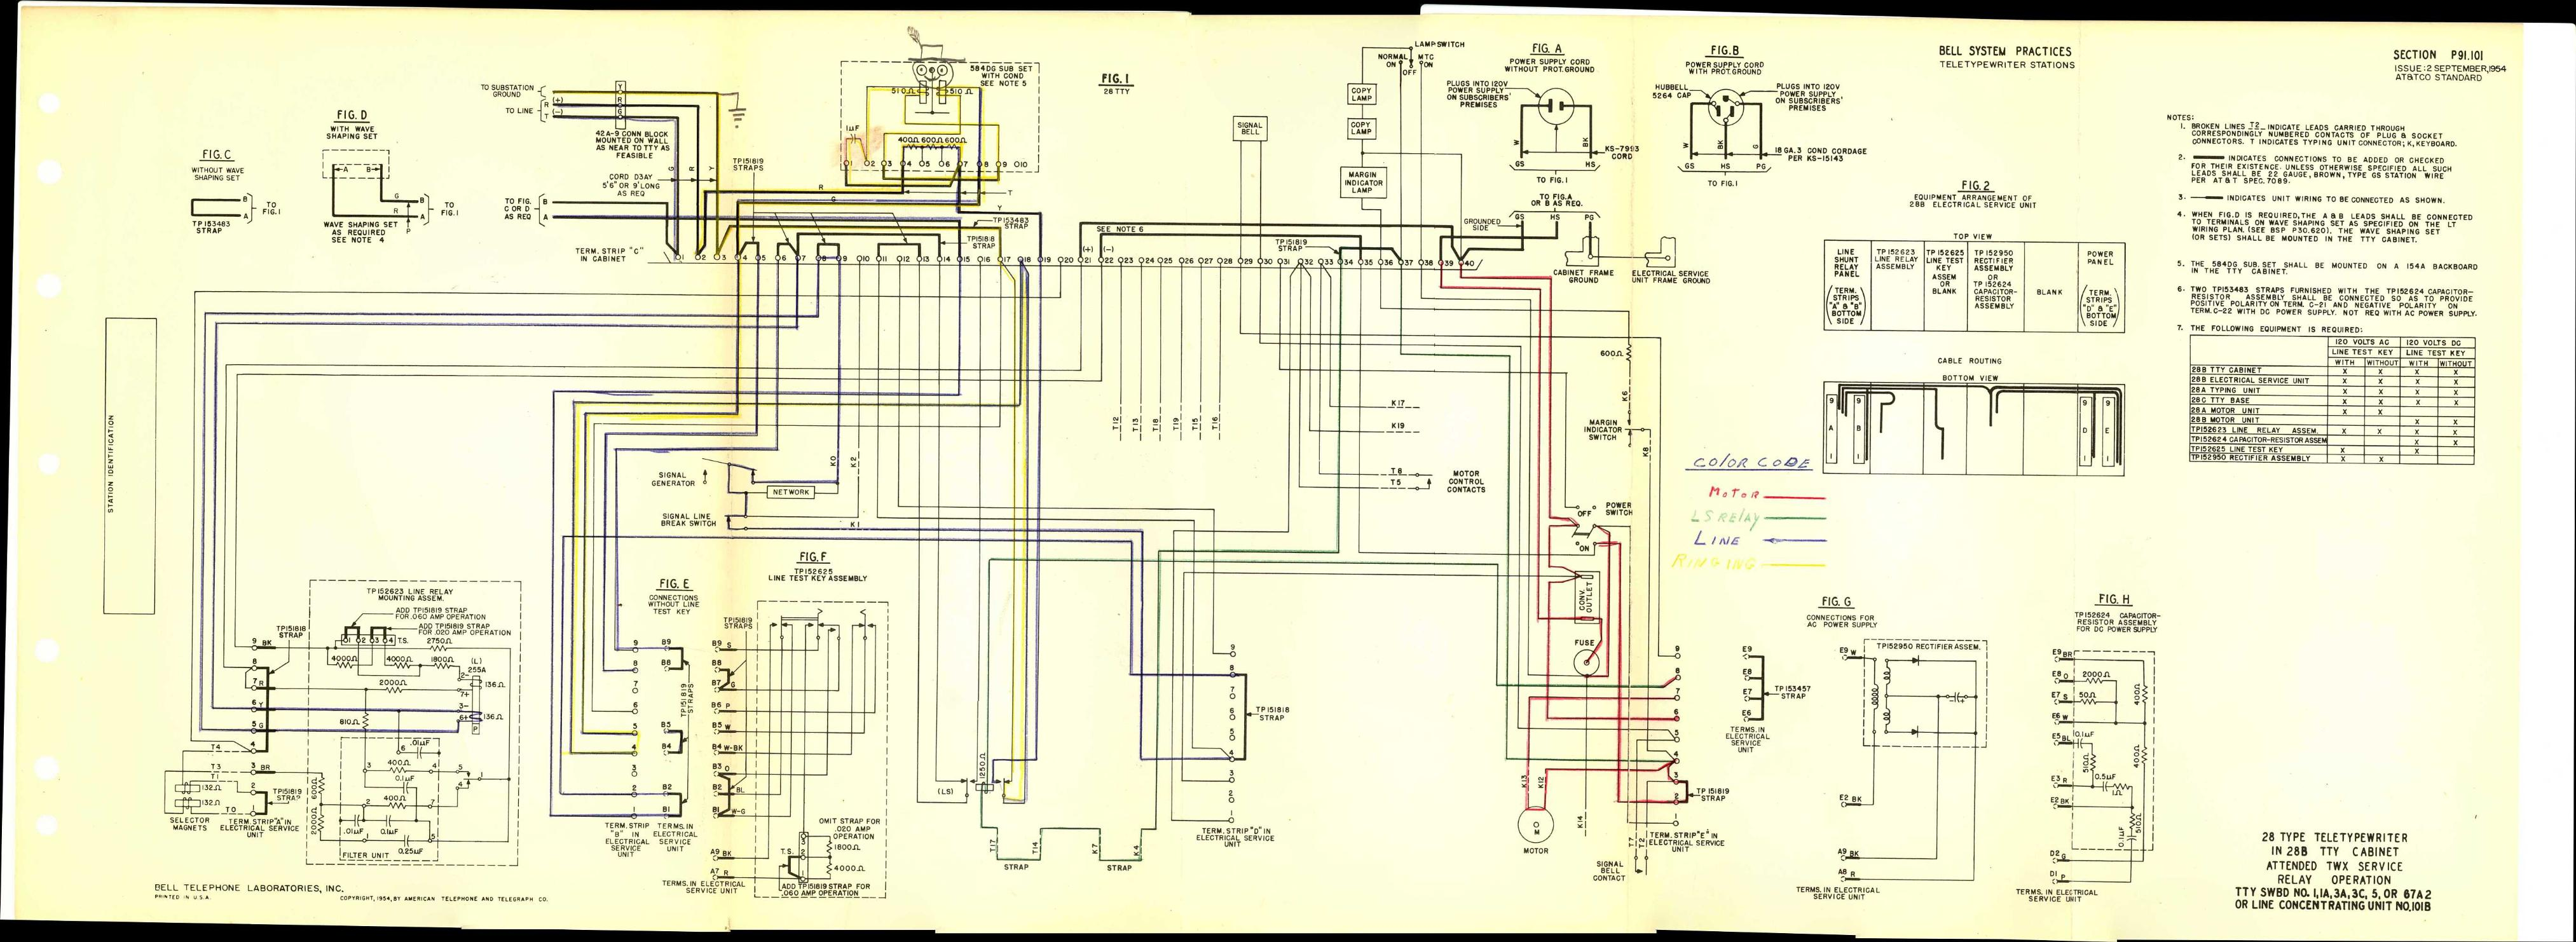 110 sub panel wiring diagram 5 pin oak court glen head ny teletype corp. maintenance, installation, operation, and parts publications